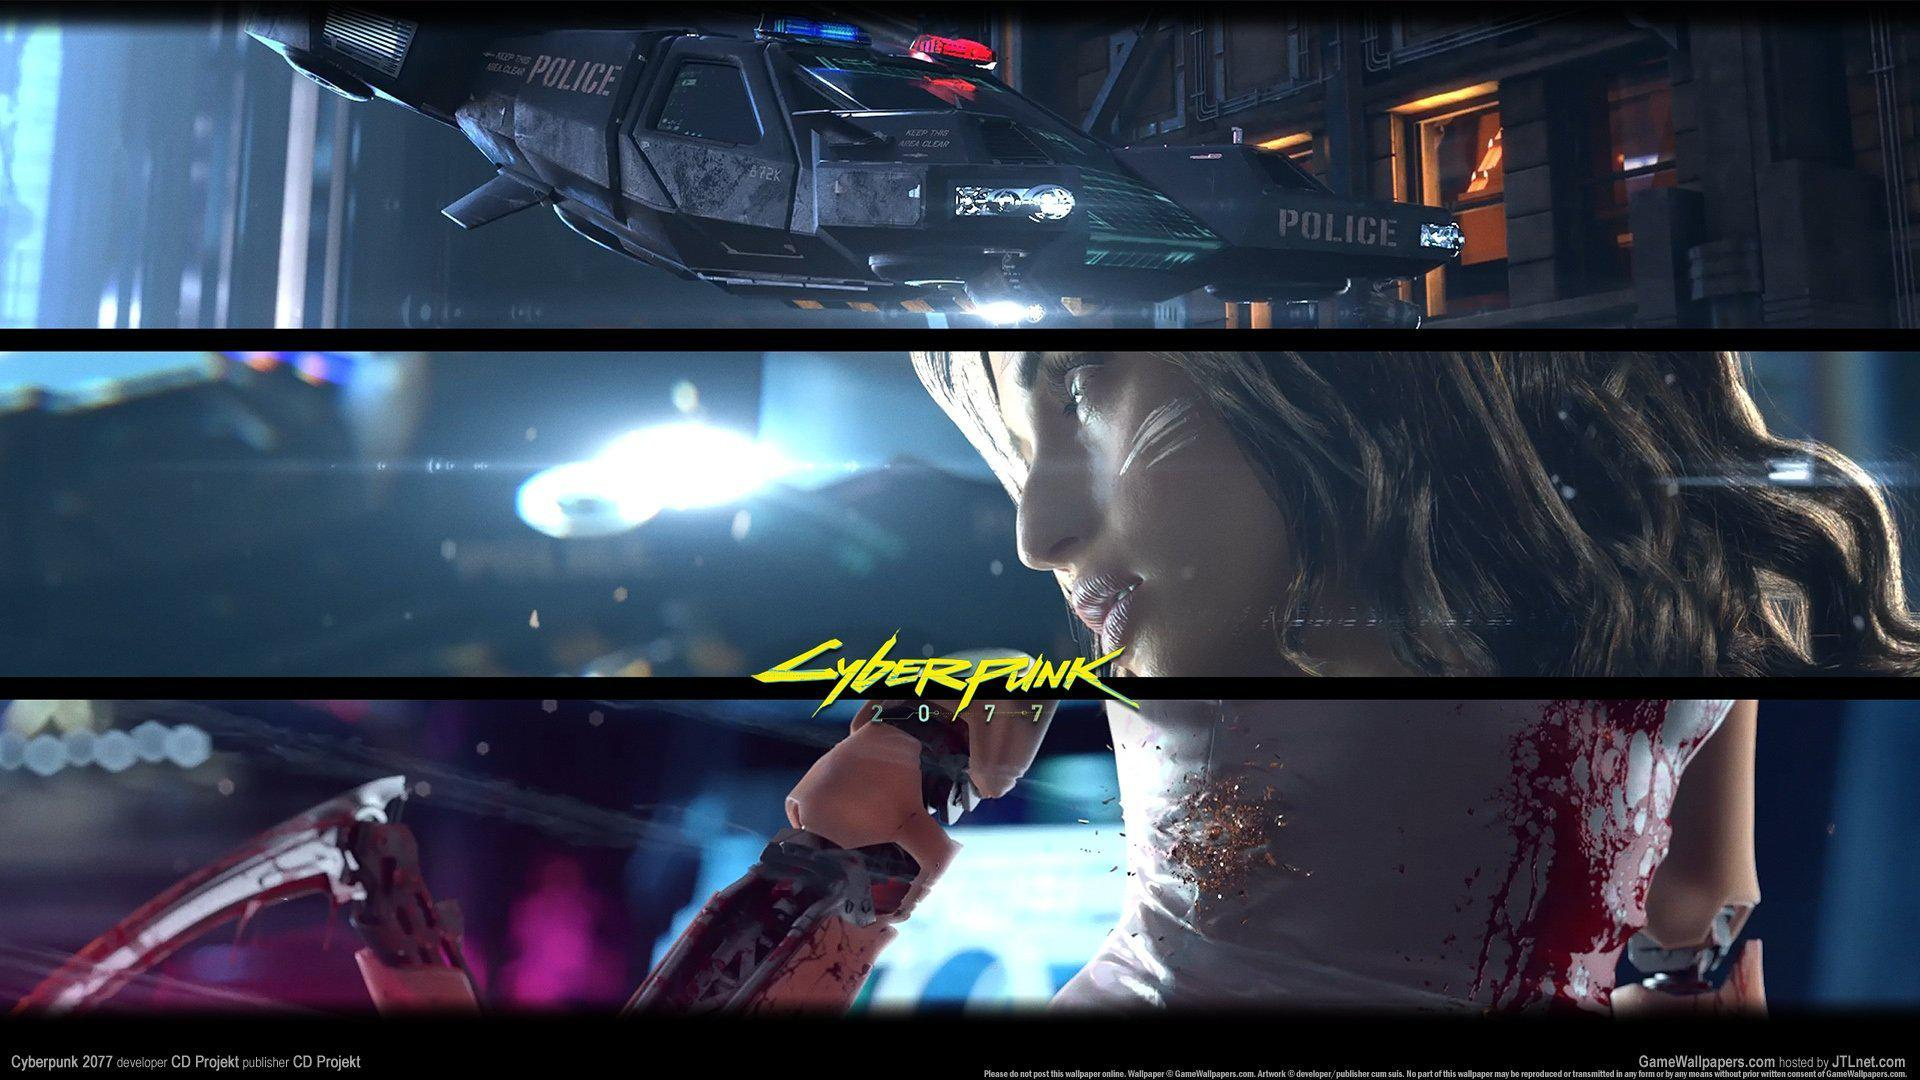 These New Cyberpunk Concept Art Images Are Absolutely Stunning